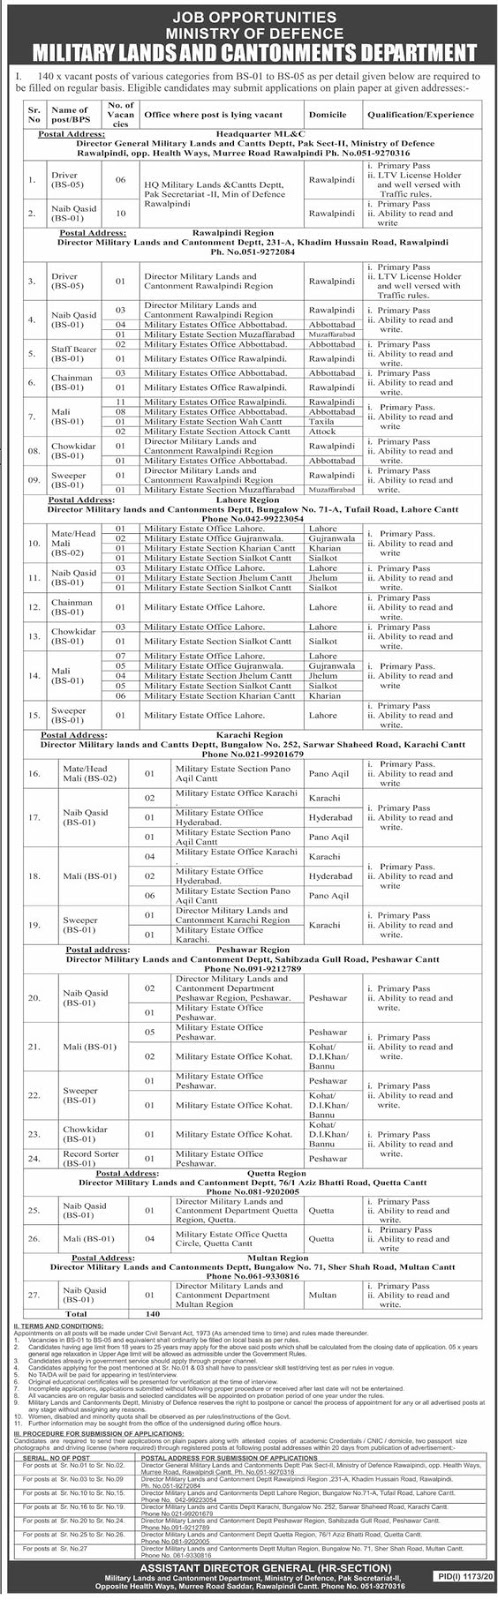 Ministry of Defence Jobs in Military Lands & Cantonments Department 2020 | 140 Seats